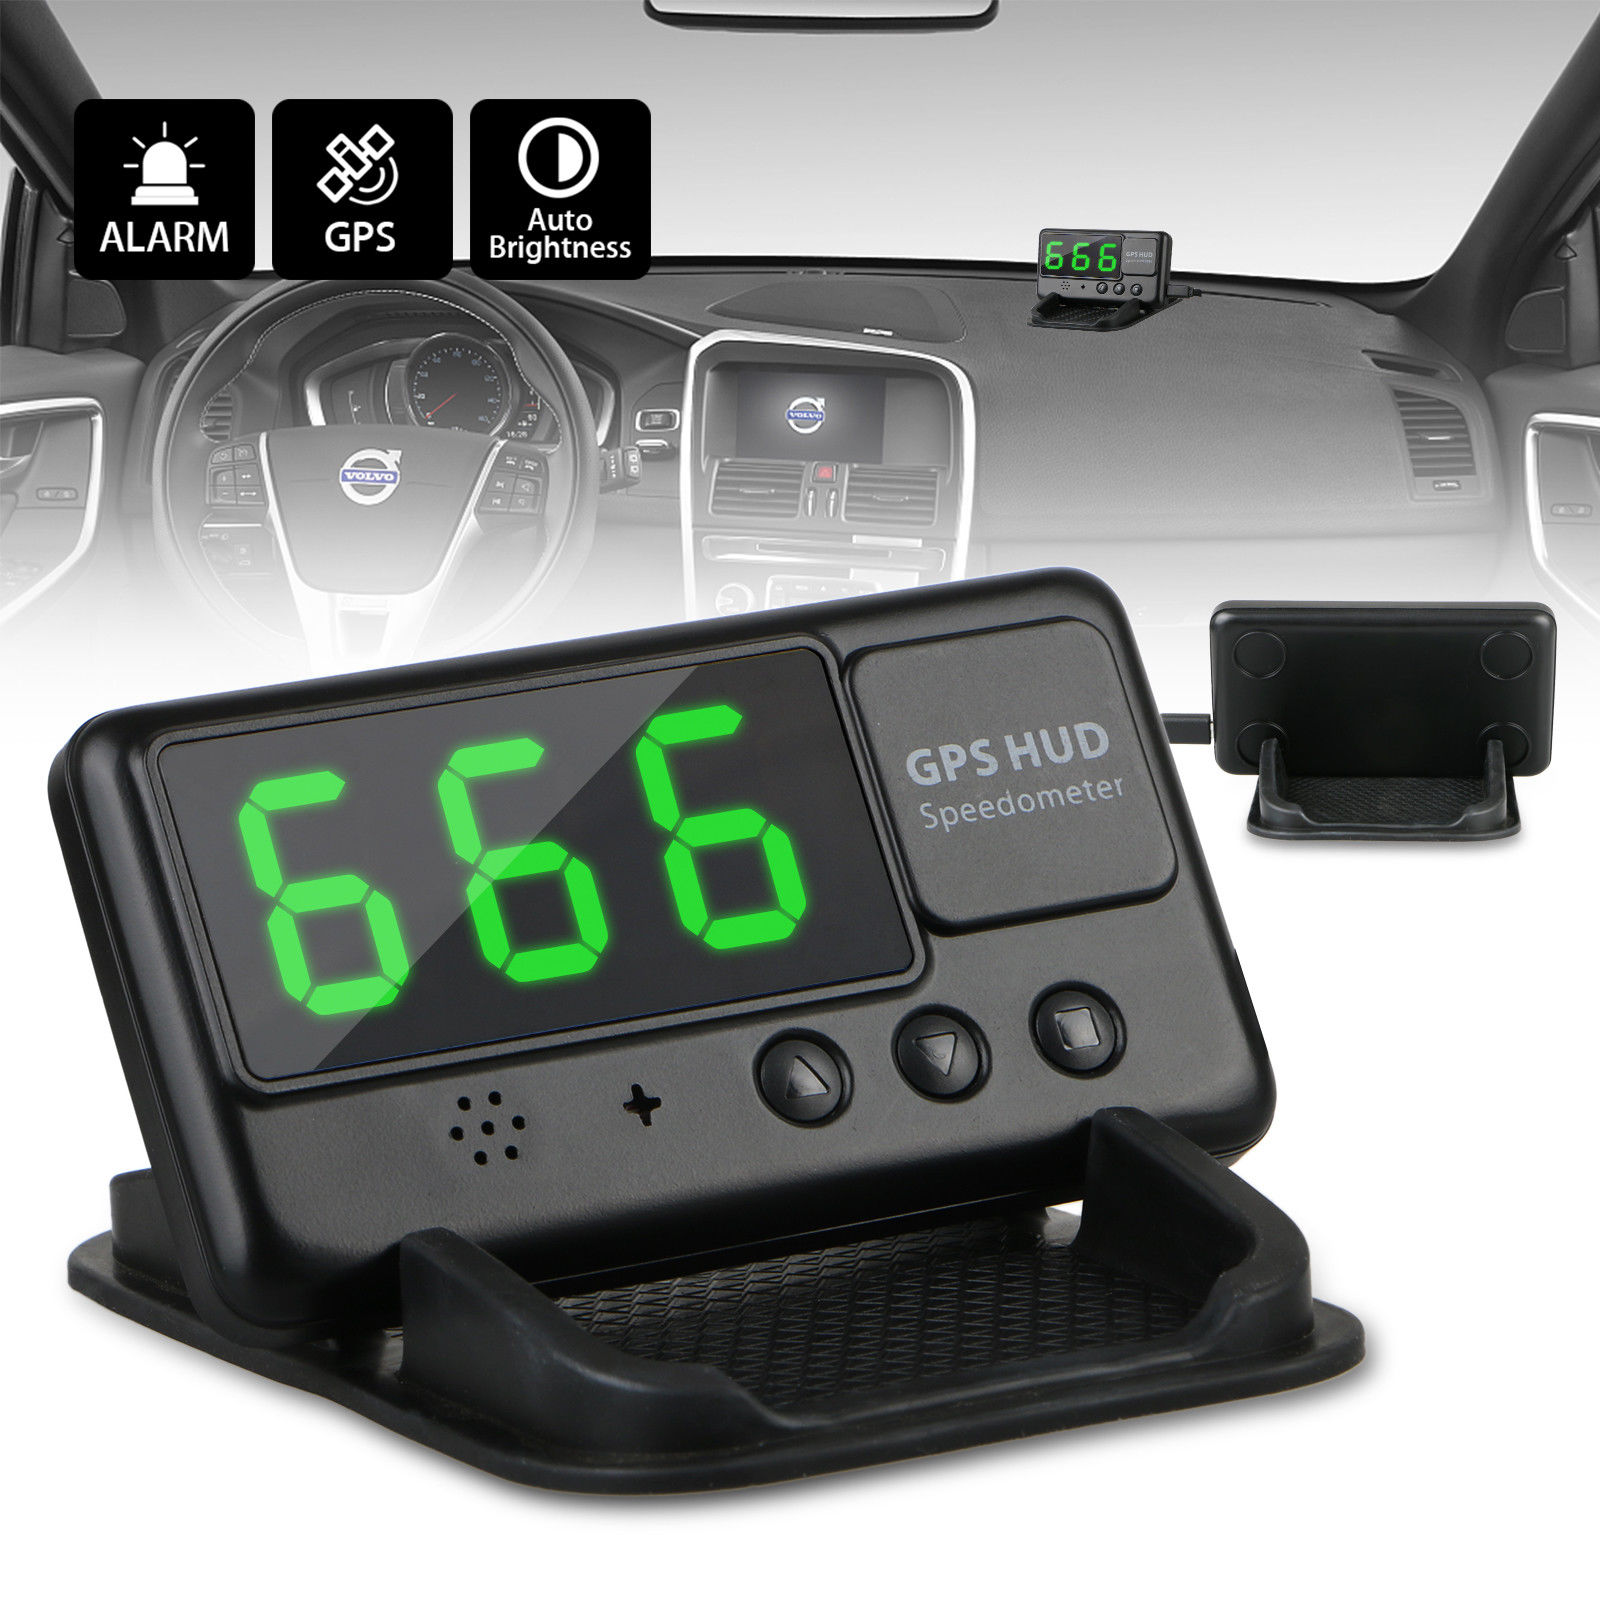 Awesome Universal Car Hud Head Up Display Gps Mph Km H Plug Speedometer Wiring Cloud Rometaidewilluminateatxorg